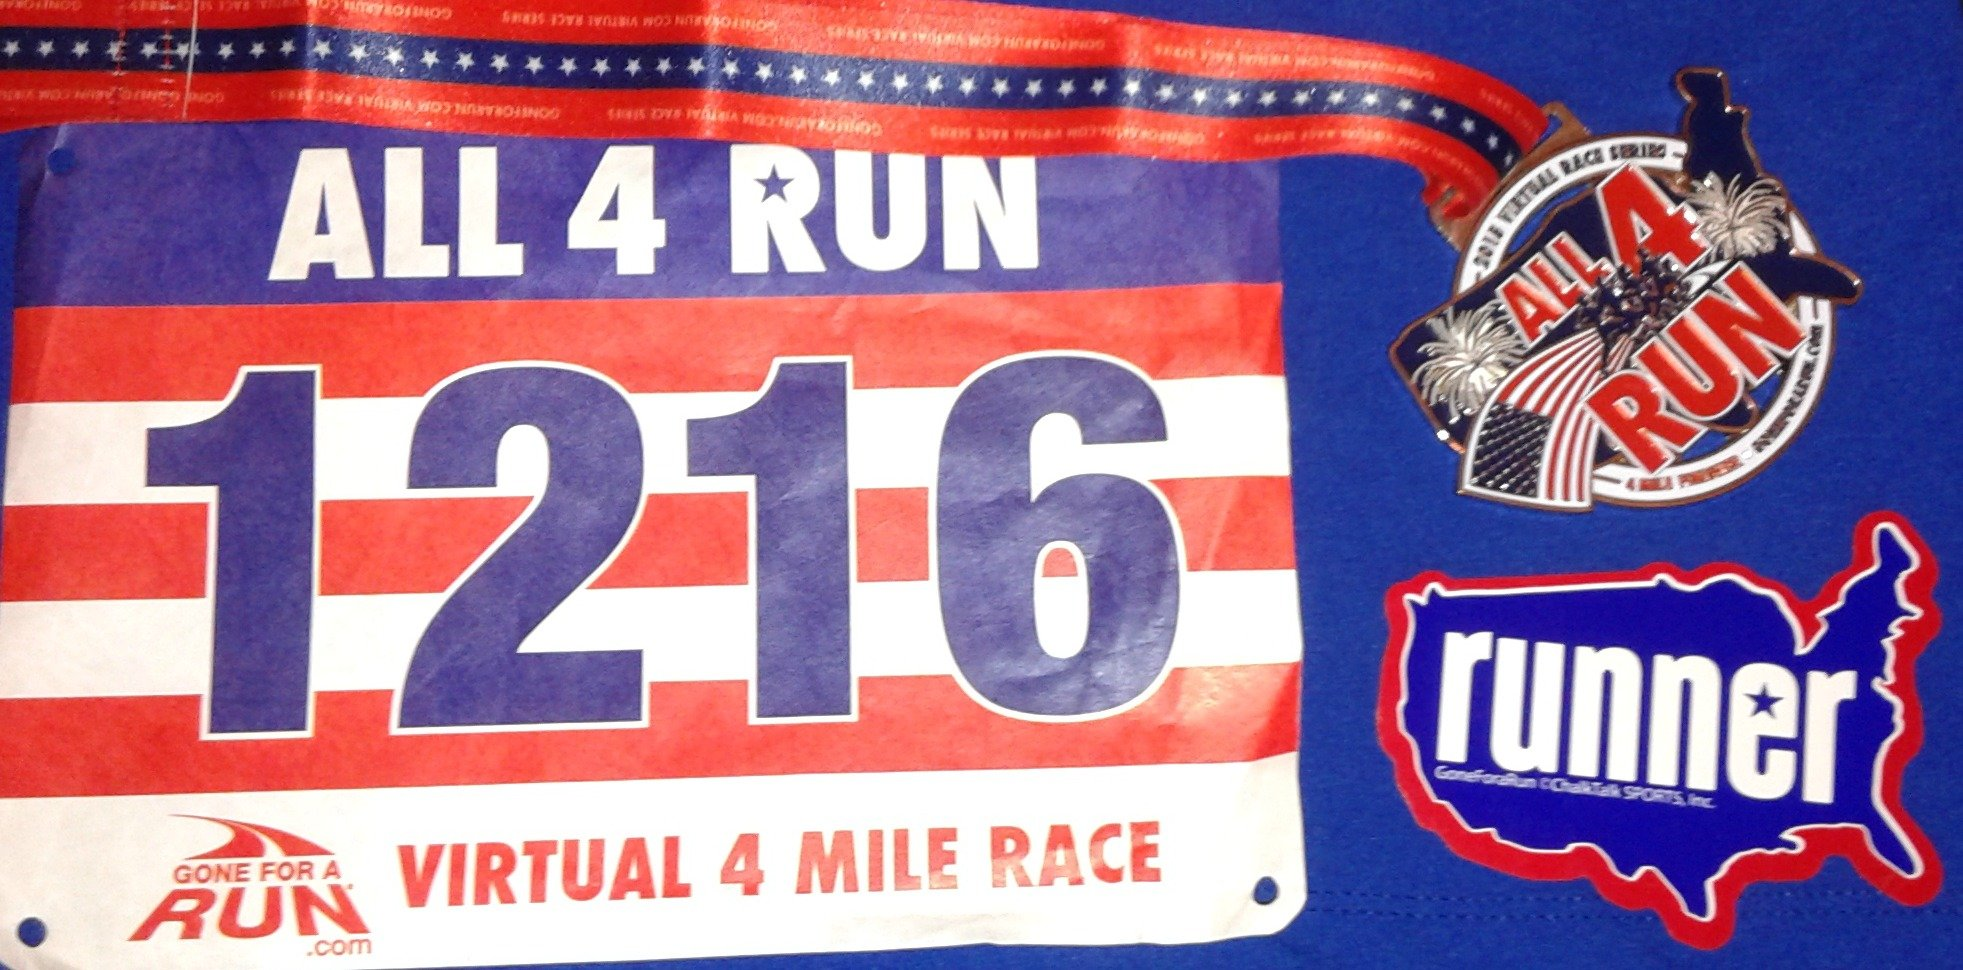 virtual race bib medal